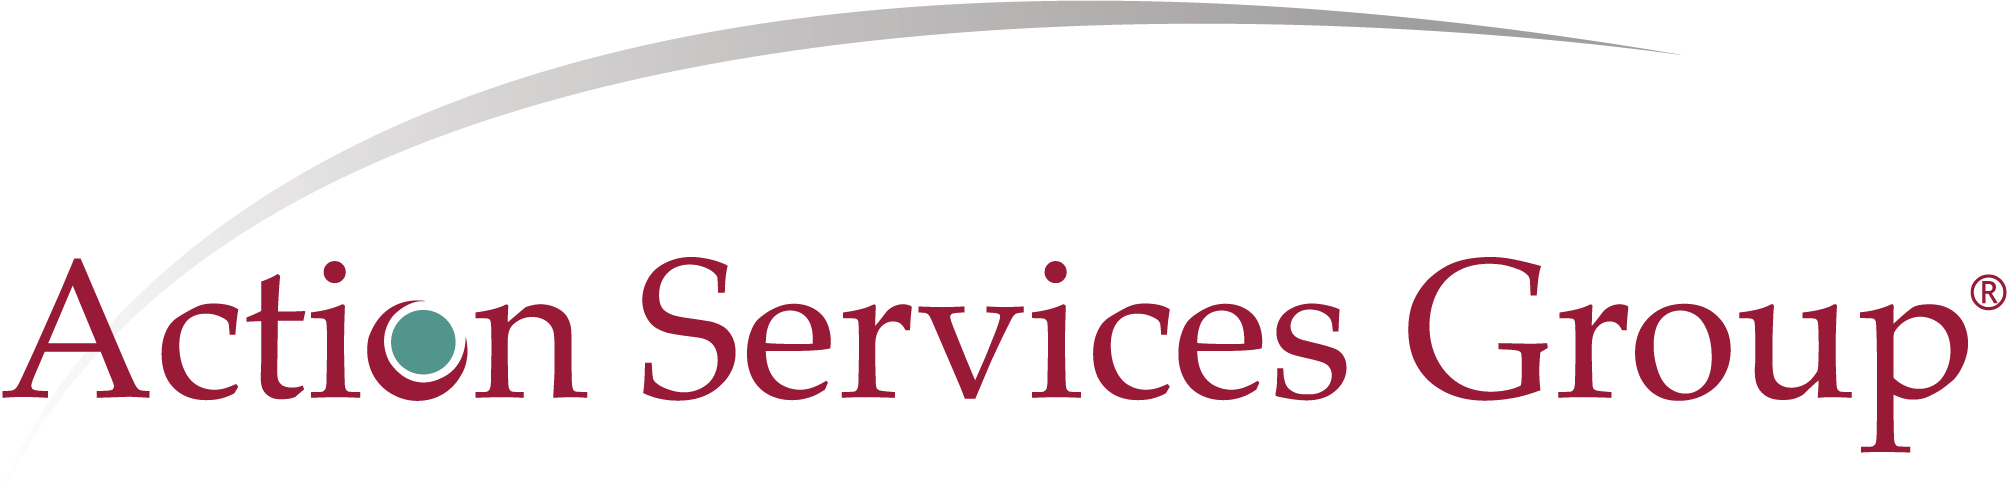 Action Services Group